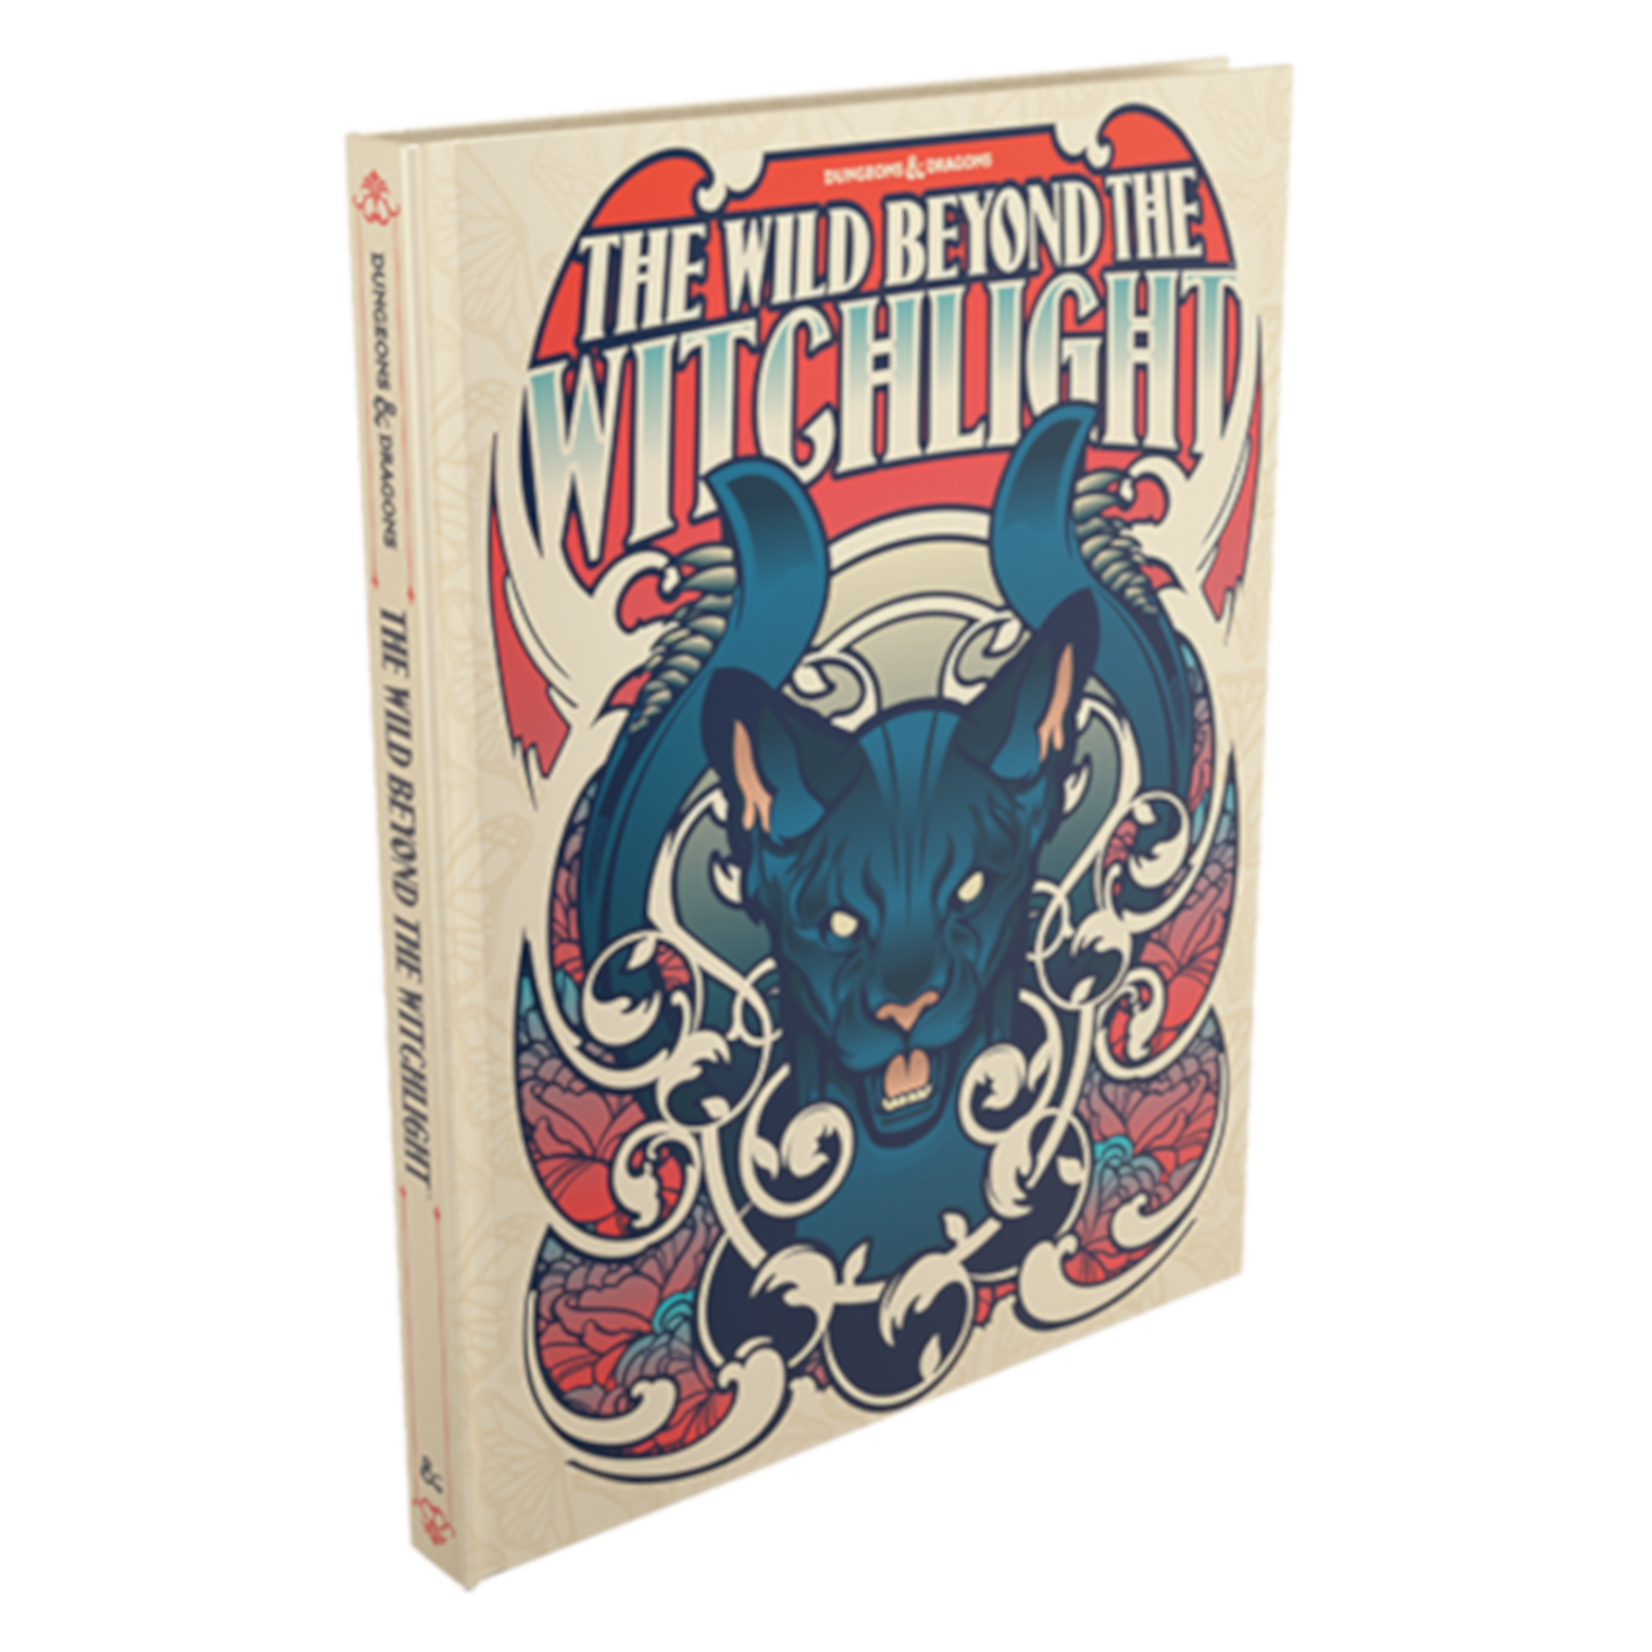 Wizards of the Coast Dungeons and Dragons Fifth Edition: The Wild Beyond the Witchlight ALTERNATE ART COVER (Preorder)